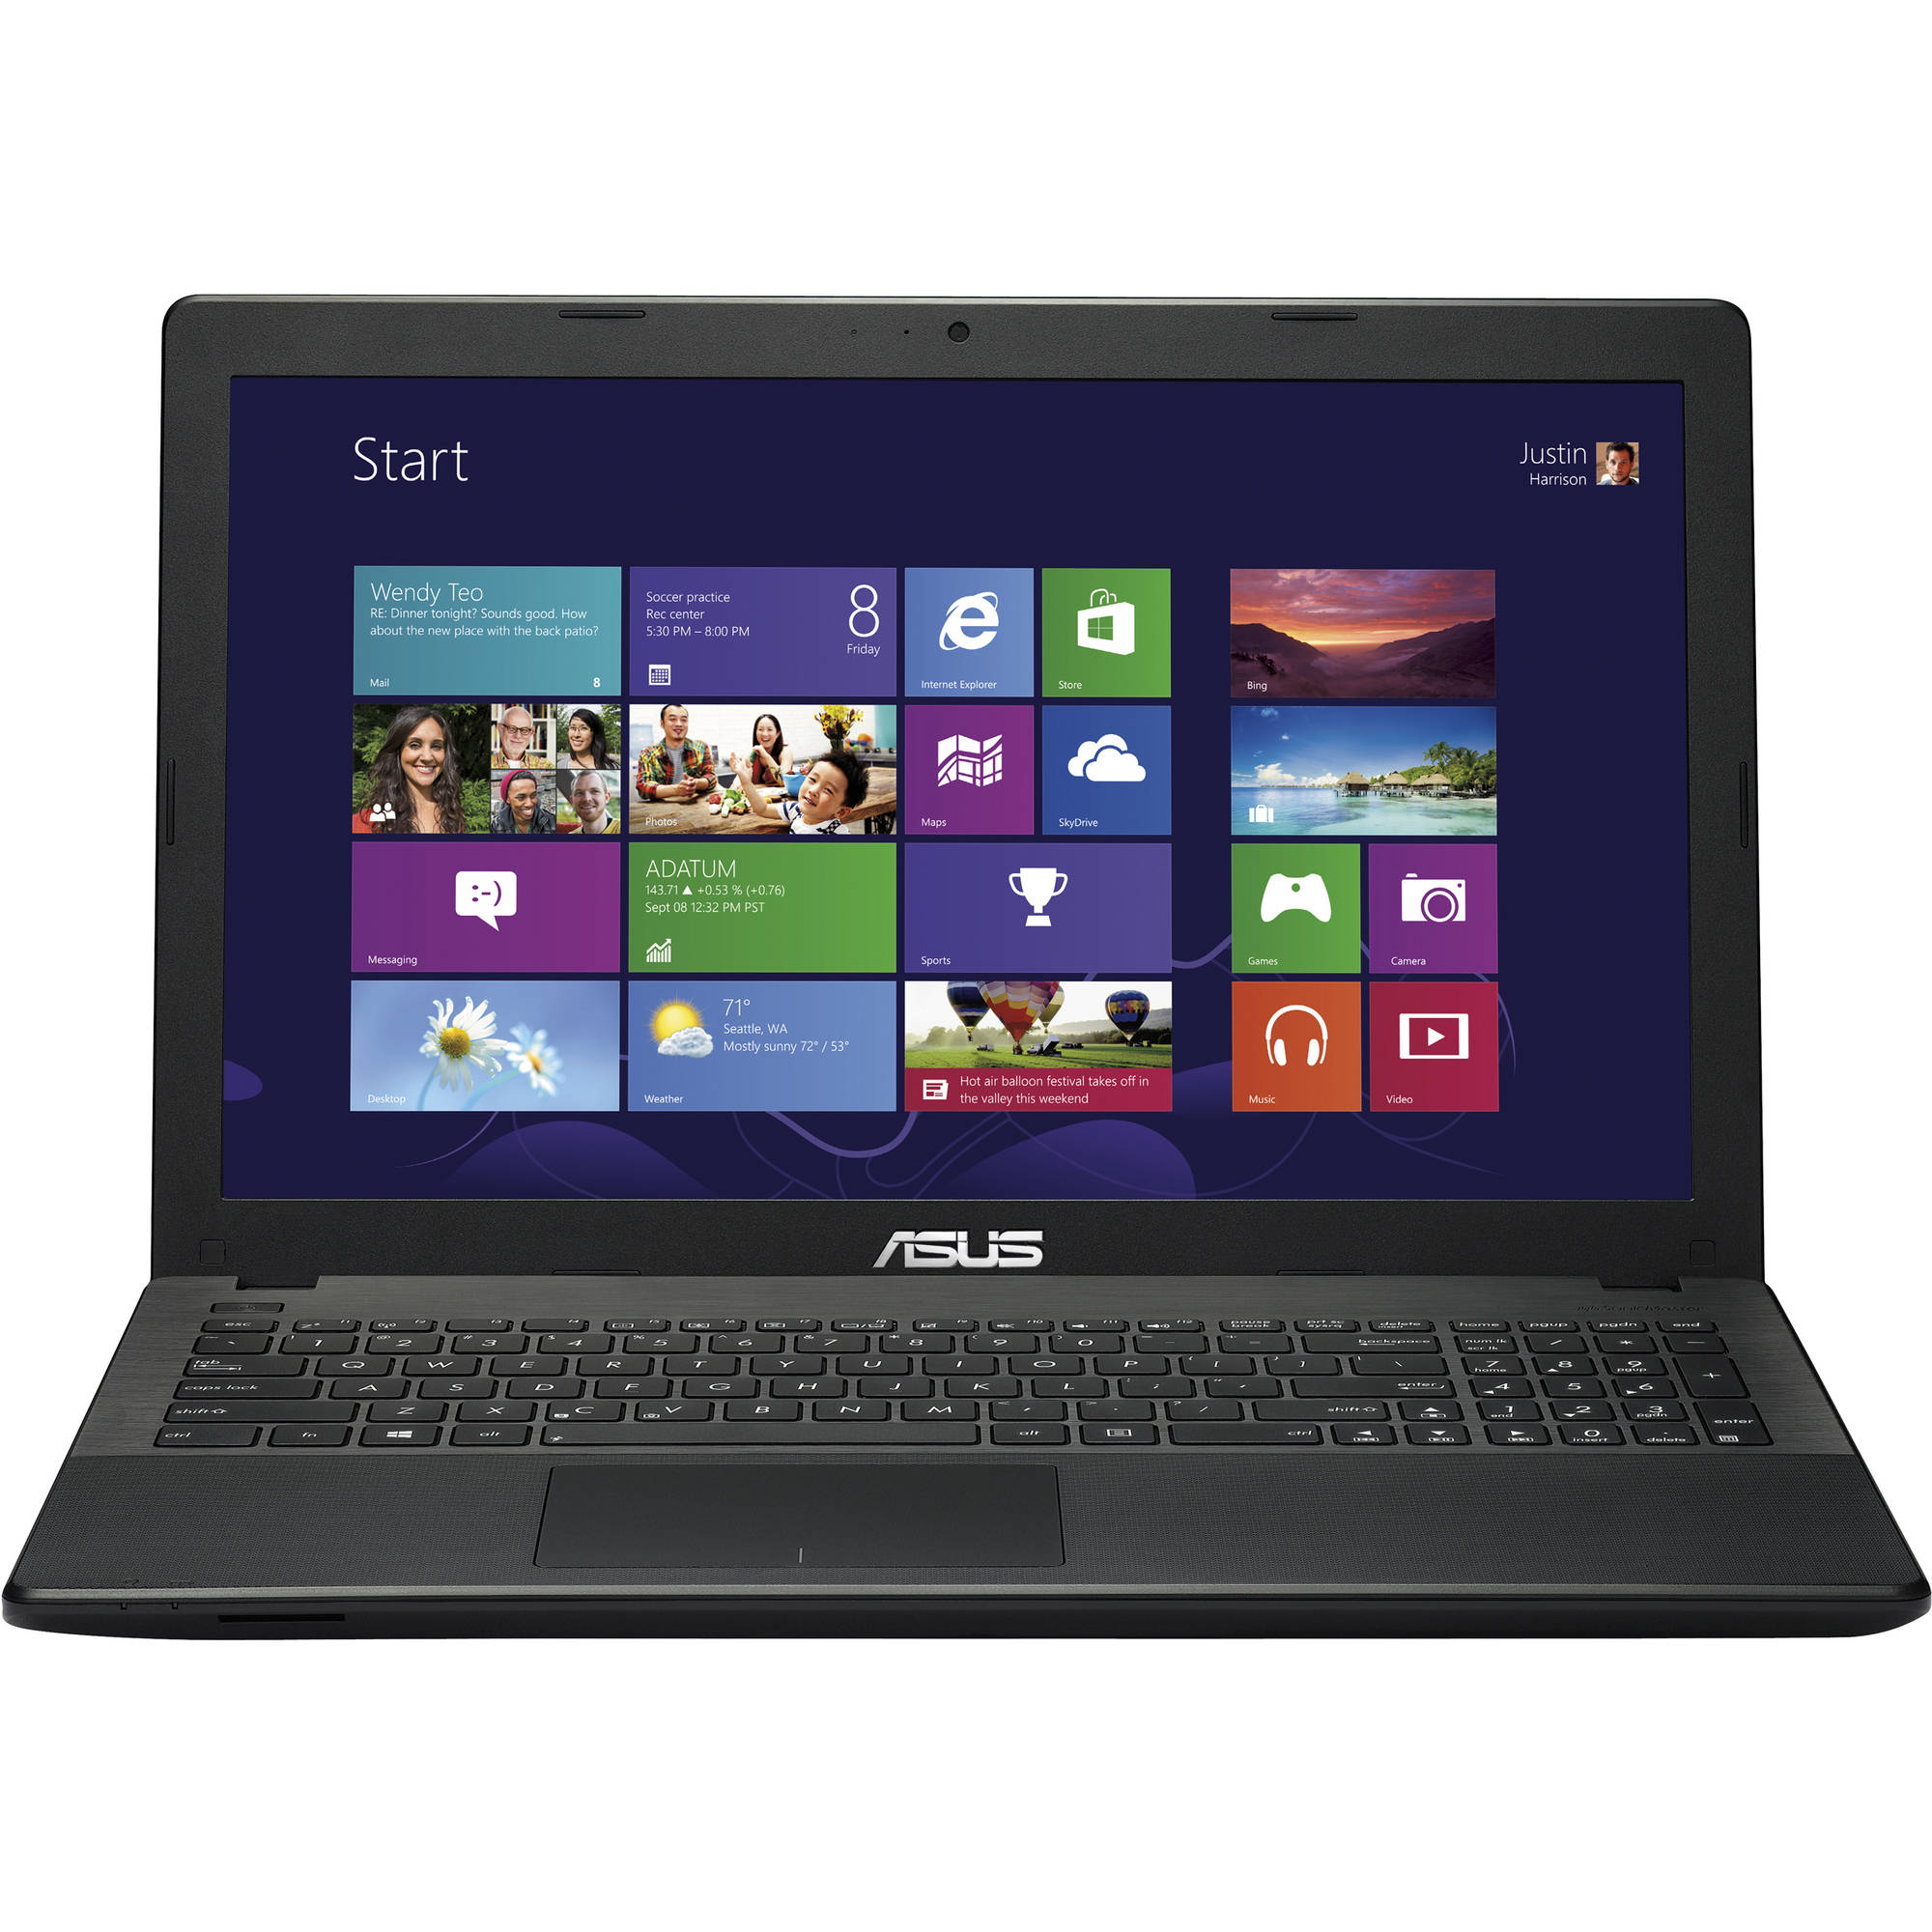 "ASUS Black 15.6"" X551CA-RI3N15 Laptop PC with Intel Core i3-3217U Processor, 4GB Memory, 500GB Hard Drive and Windows 8"